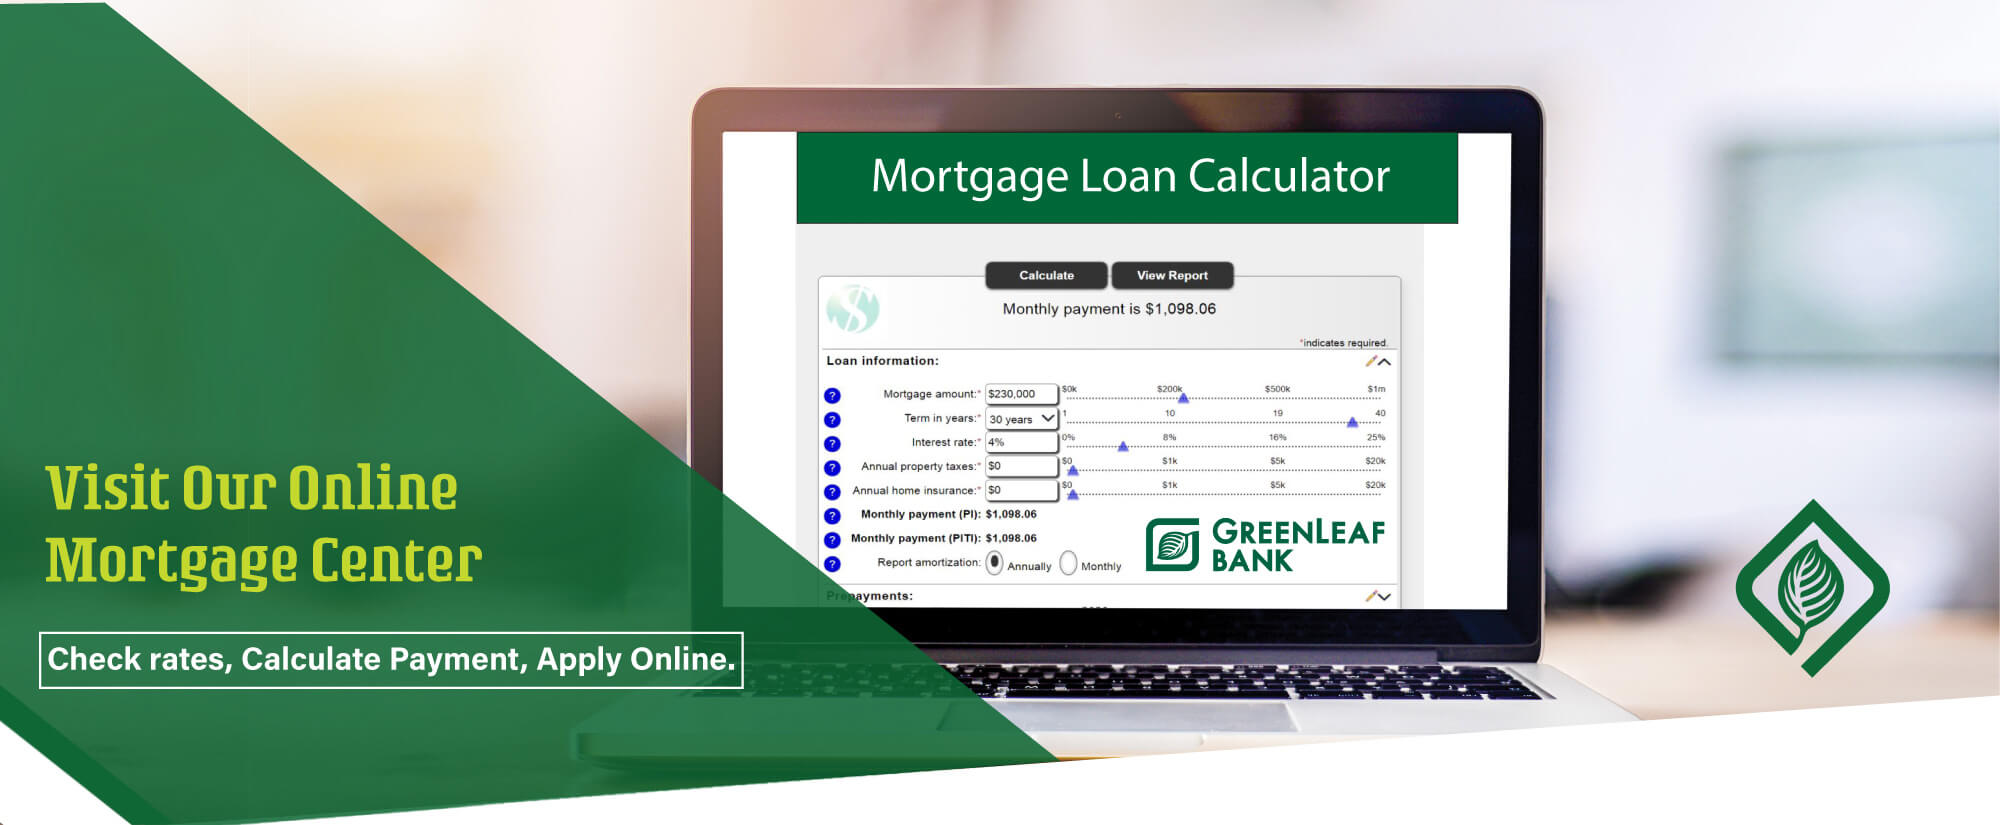 Check Rates, Calculate Payments and Apply Online